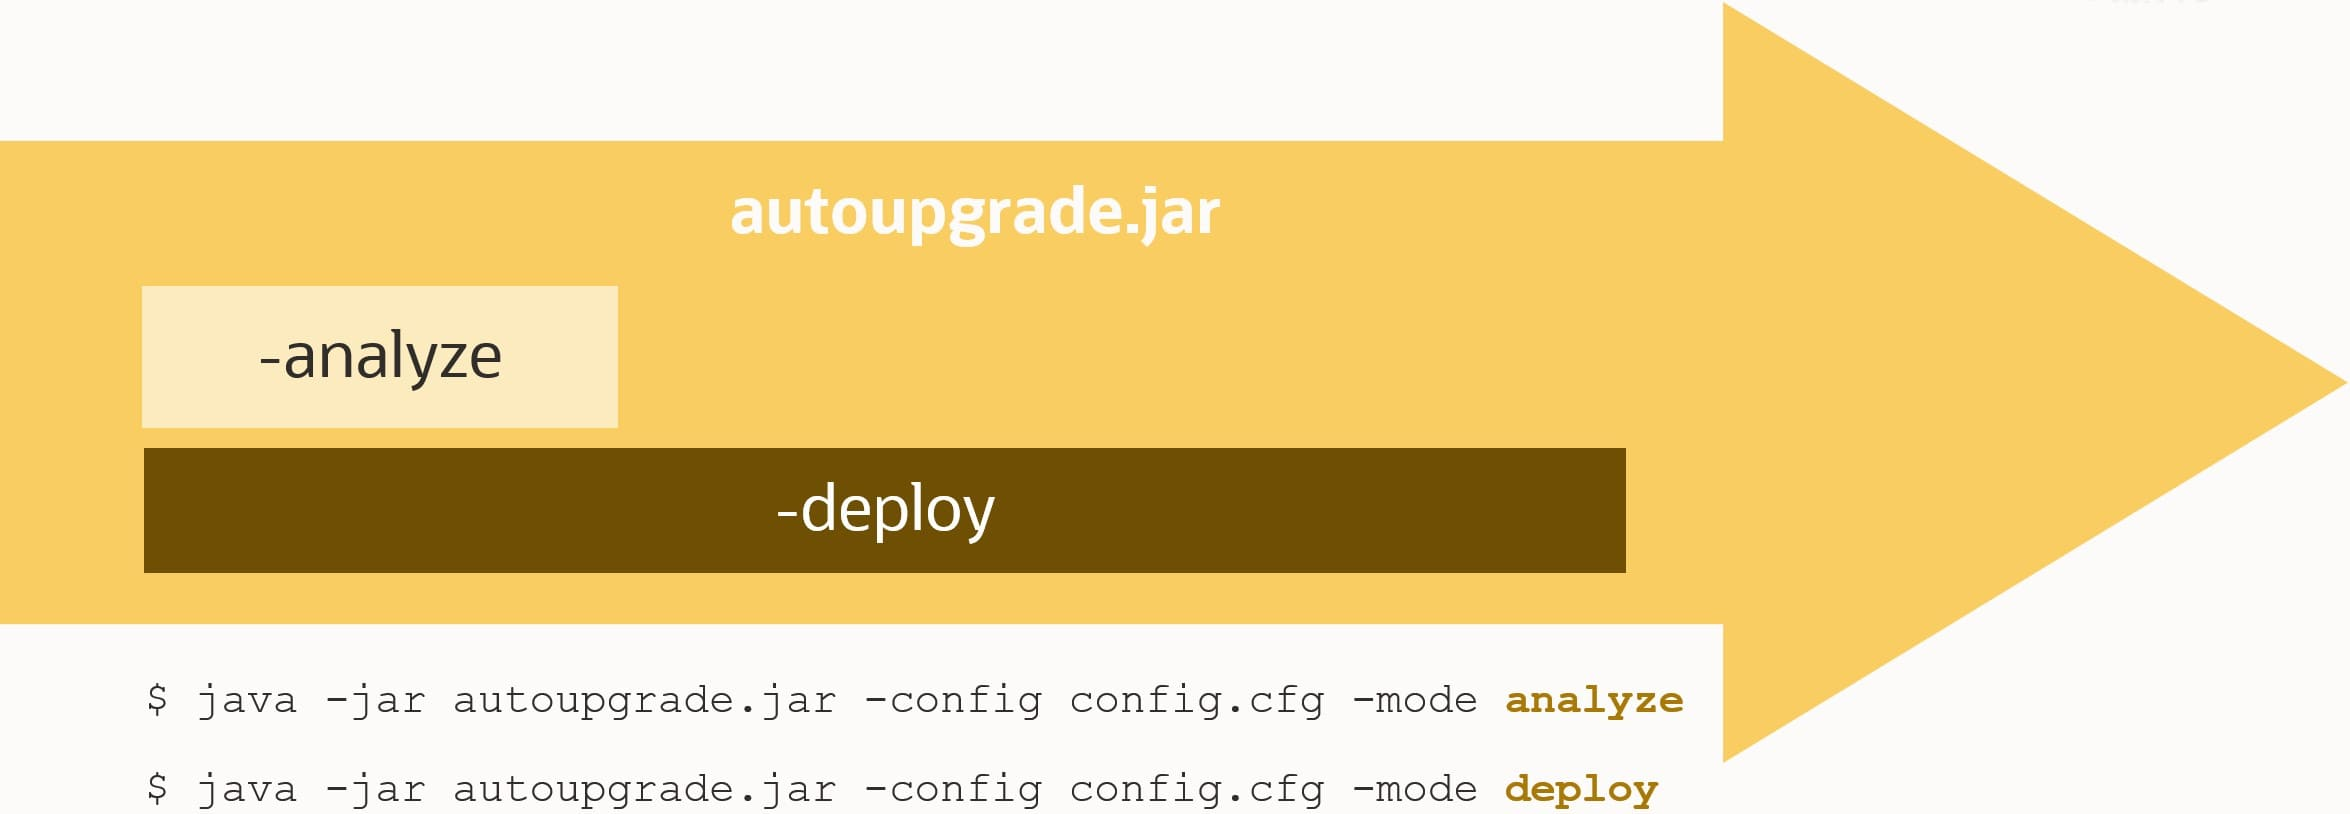 Best practice is to use AutoUpgrade in deploy mode